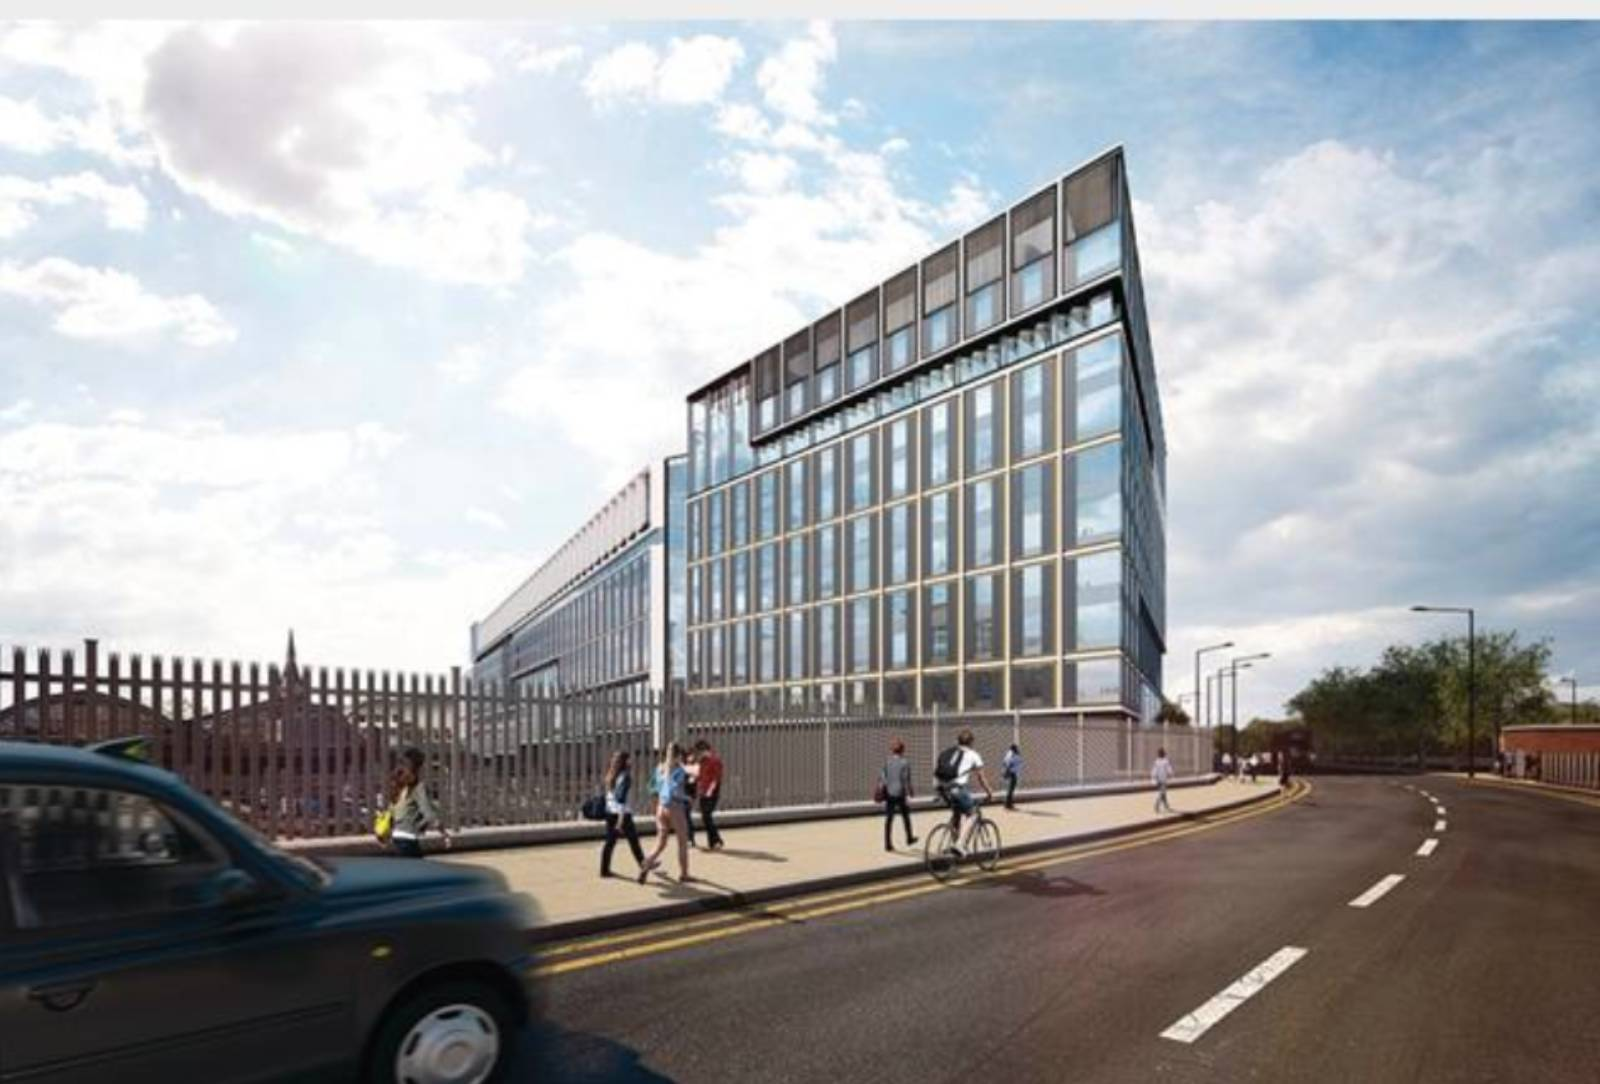 Google 39 S New Headquarters By Allford Hall Monaghan Morris